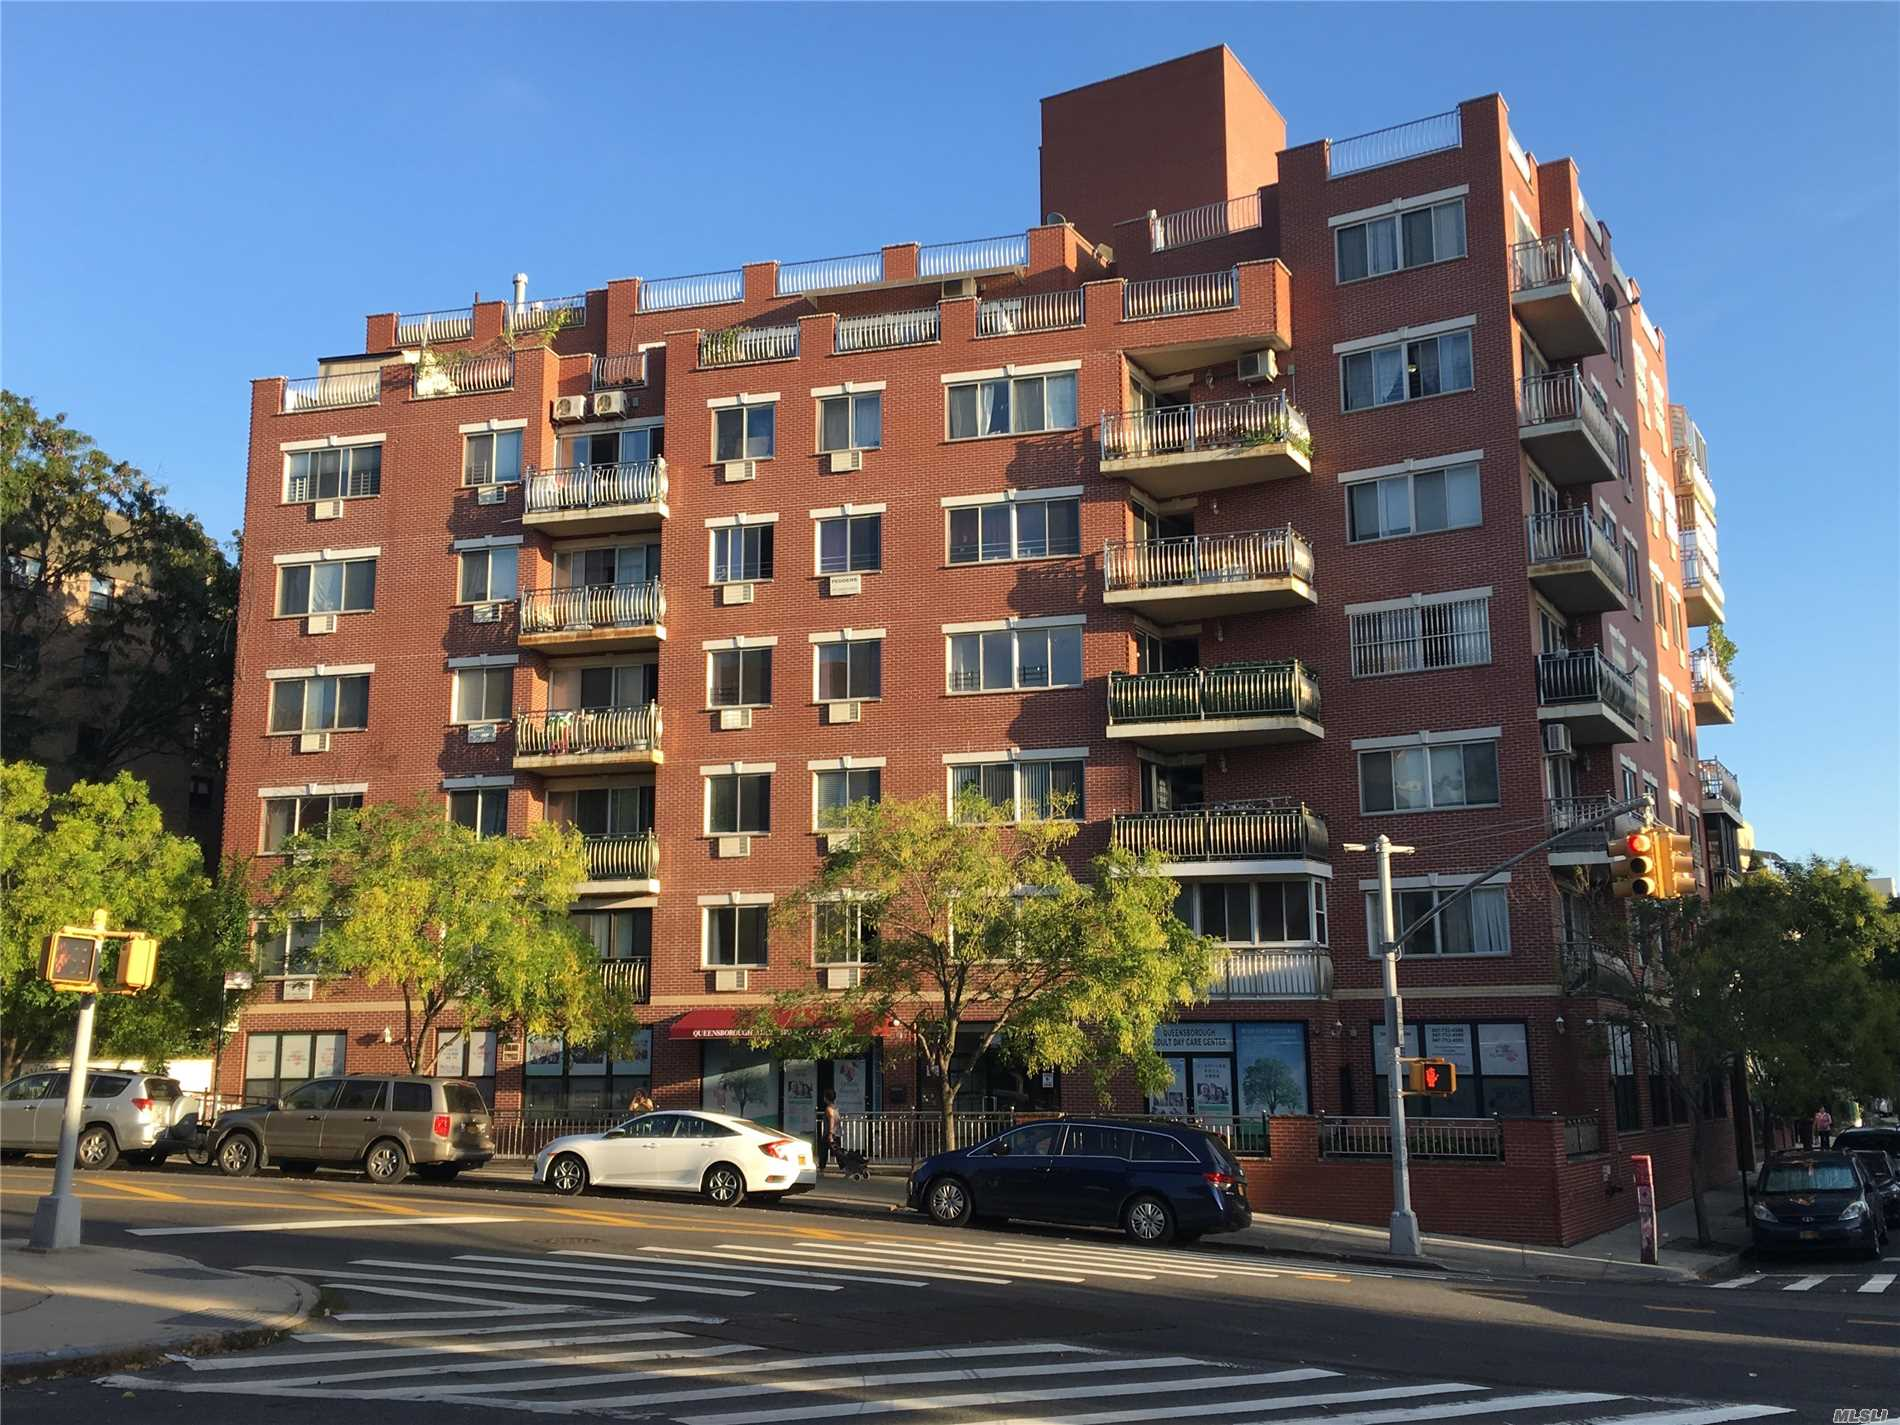 Bright Apartment With Balcony. Beautiful View In North Flushing.  9 Years Old, Still Have 6 More Years Tax Abatement. 2 Bedrooms Convert To 3 Bedrooms. Has Washer And Dryer Pipe Access In The Unit. Close To Top Schools (Ps242&Ps214), Senior Center And Supermarket. Mins To Busq25 Q34 Q44 And Express Bus To Manhattan. Convenient To All.